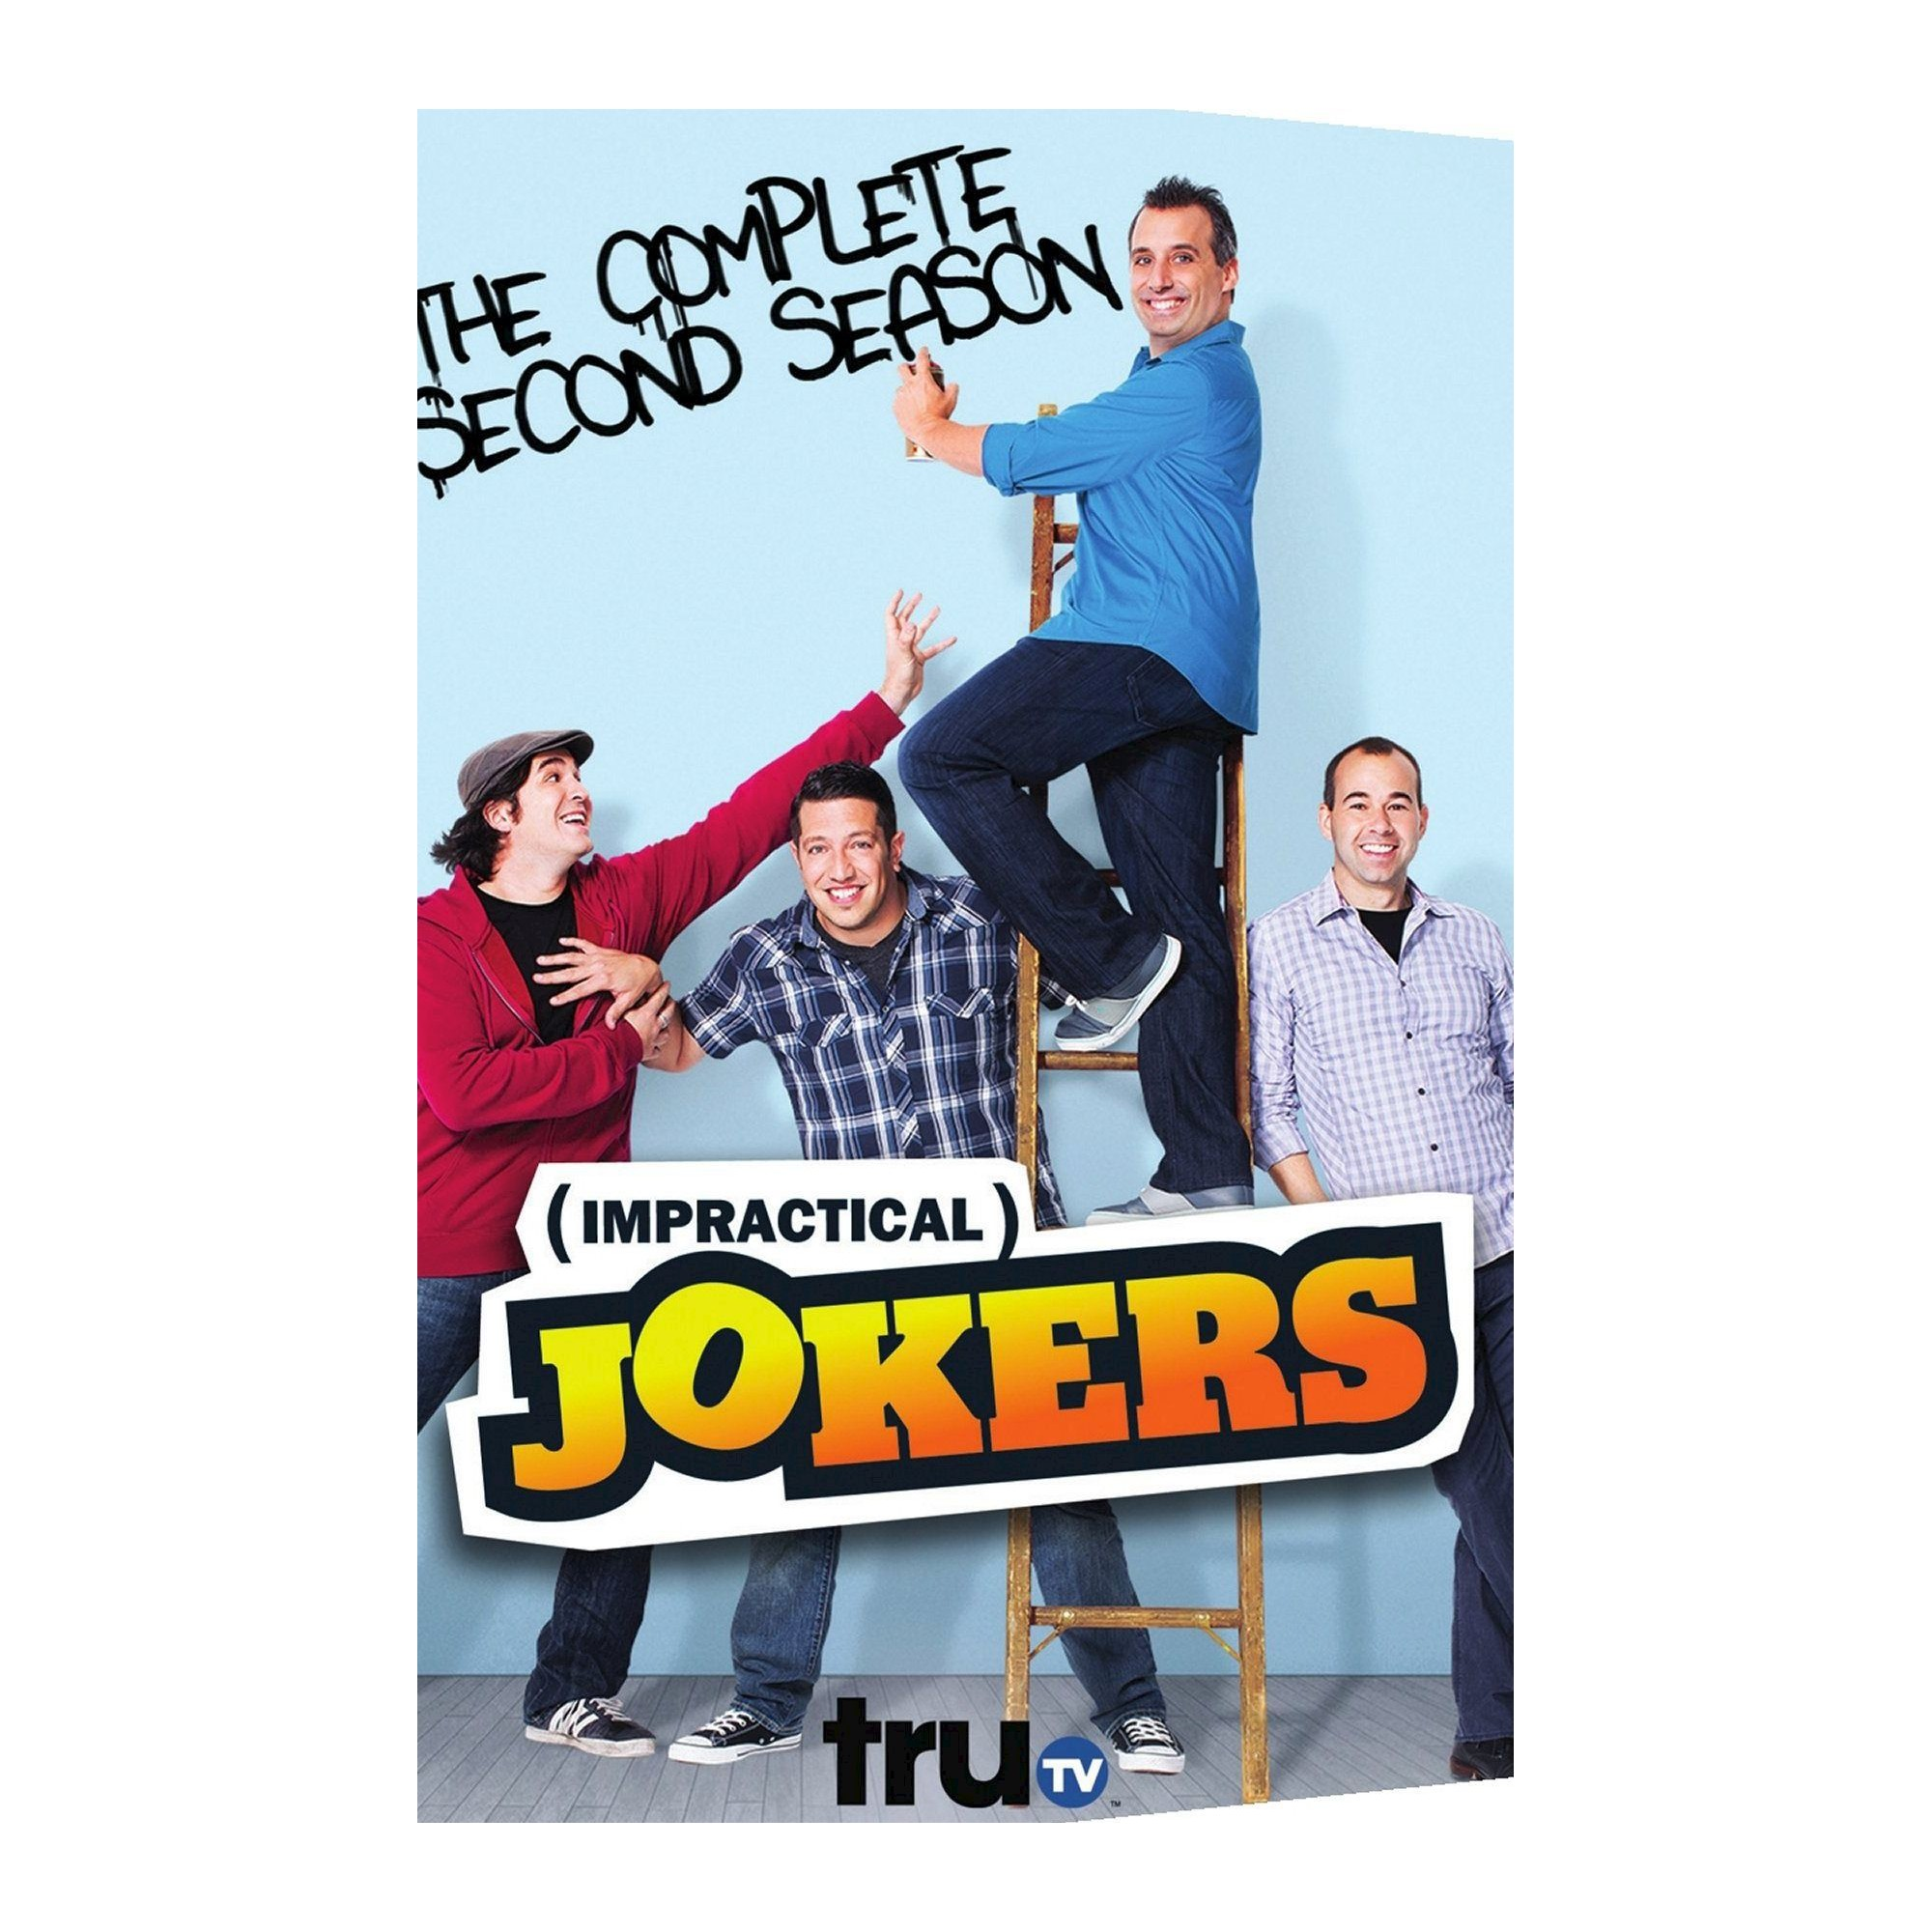 Impractical Jokers The Complete Second Season (DVD